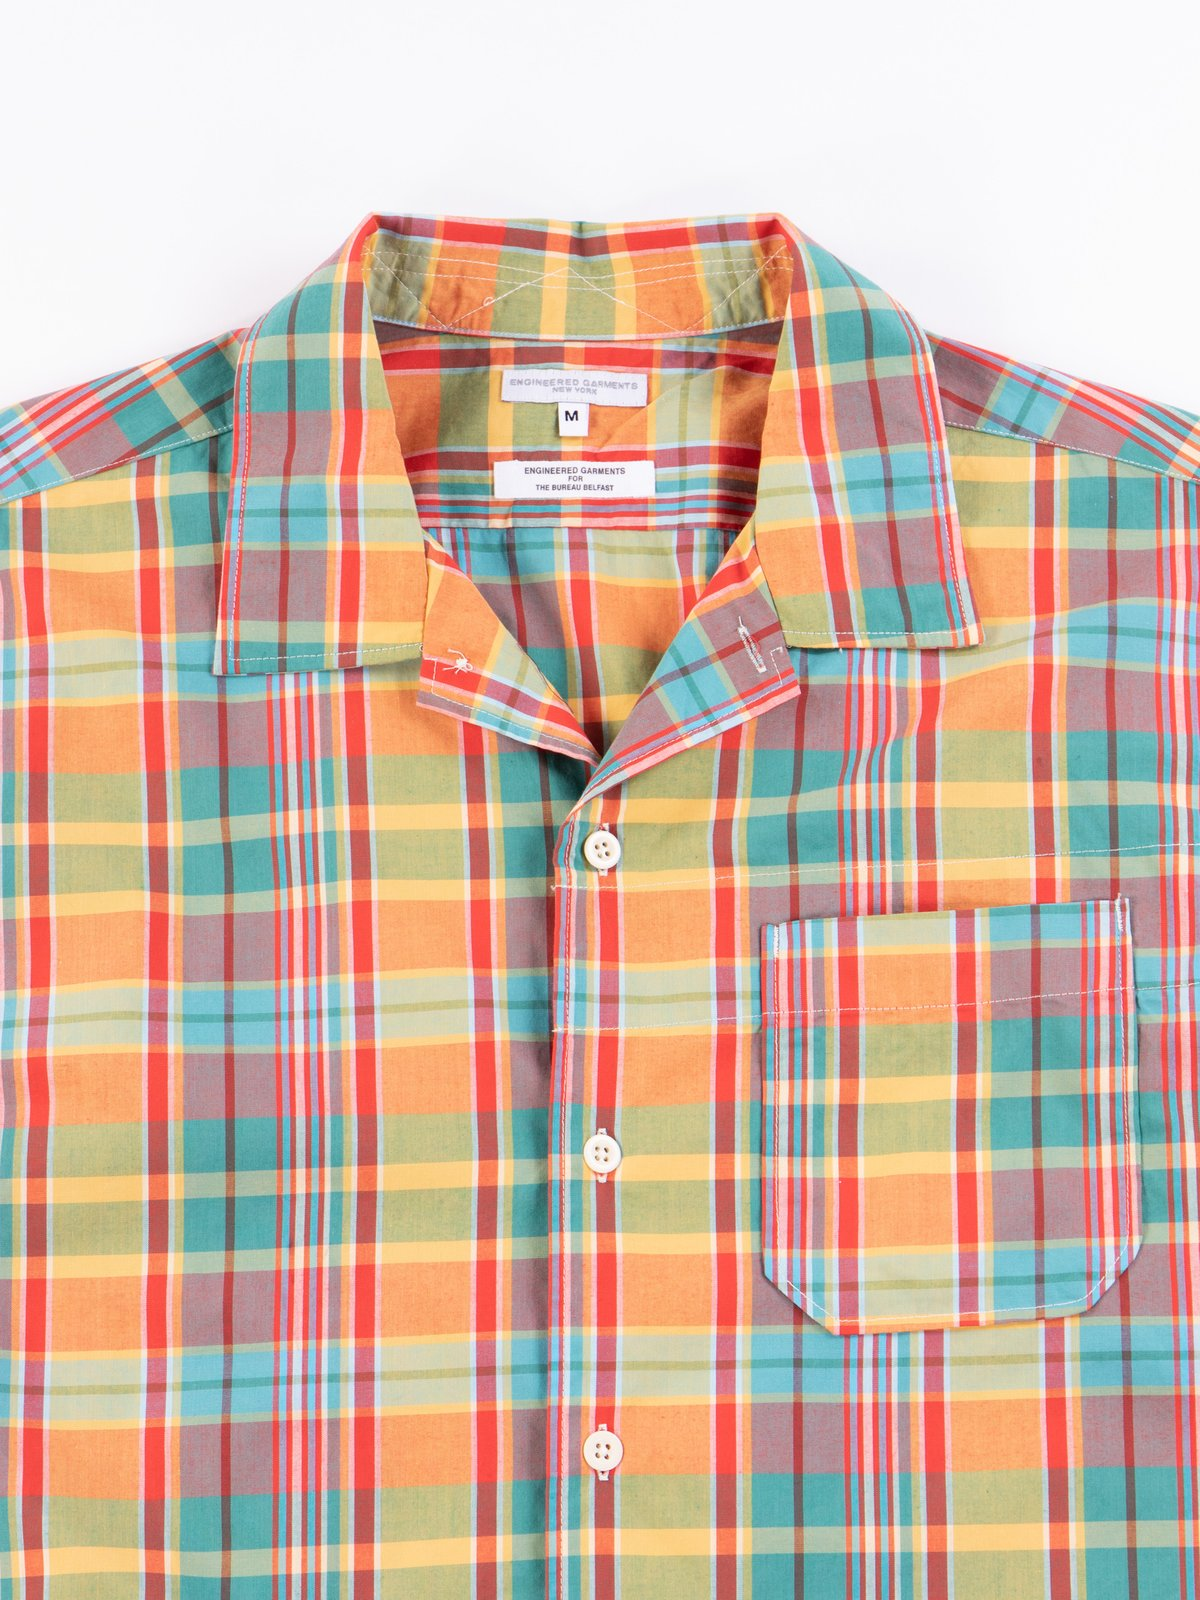 Orange Plaid Cotton Broadcloth Camp Shirt - Image 4